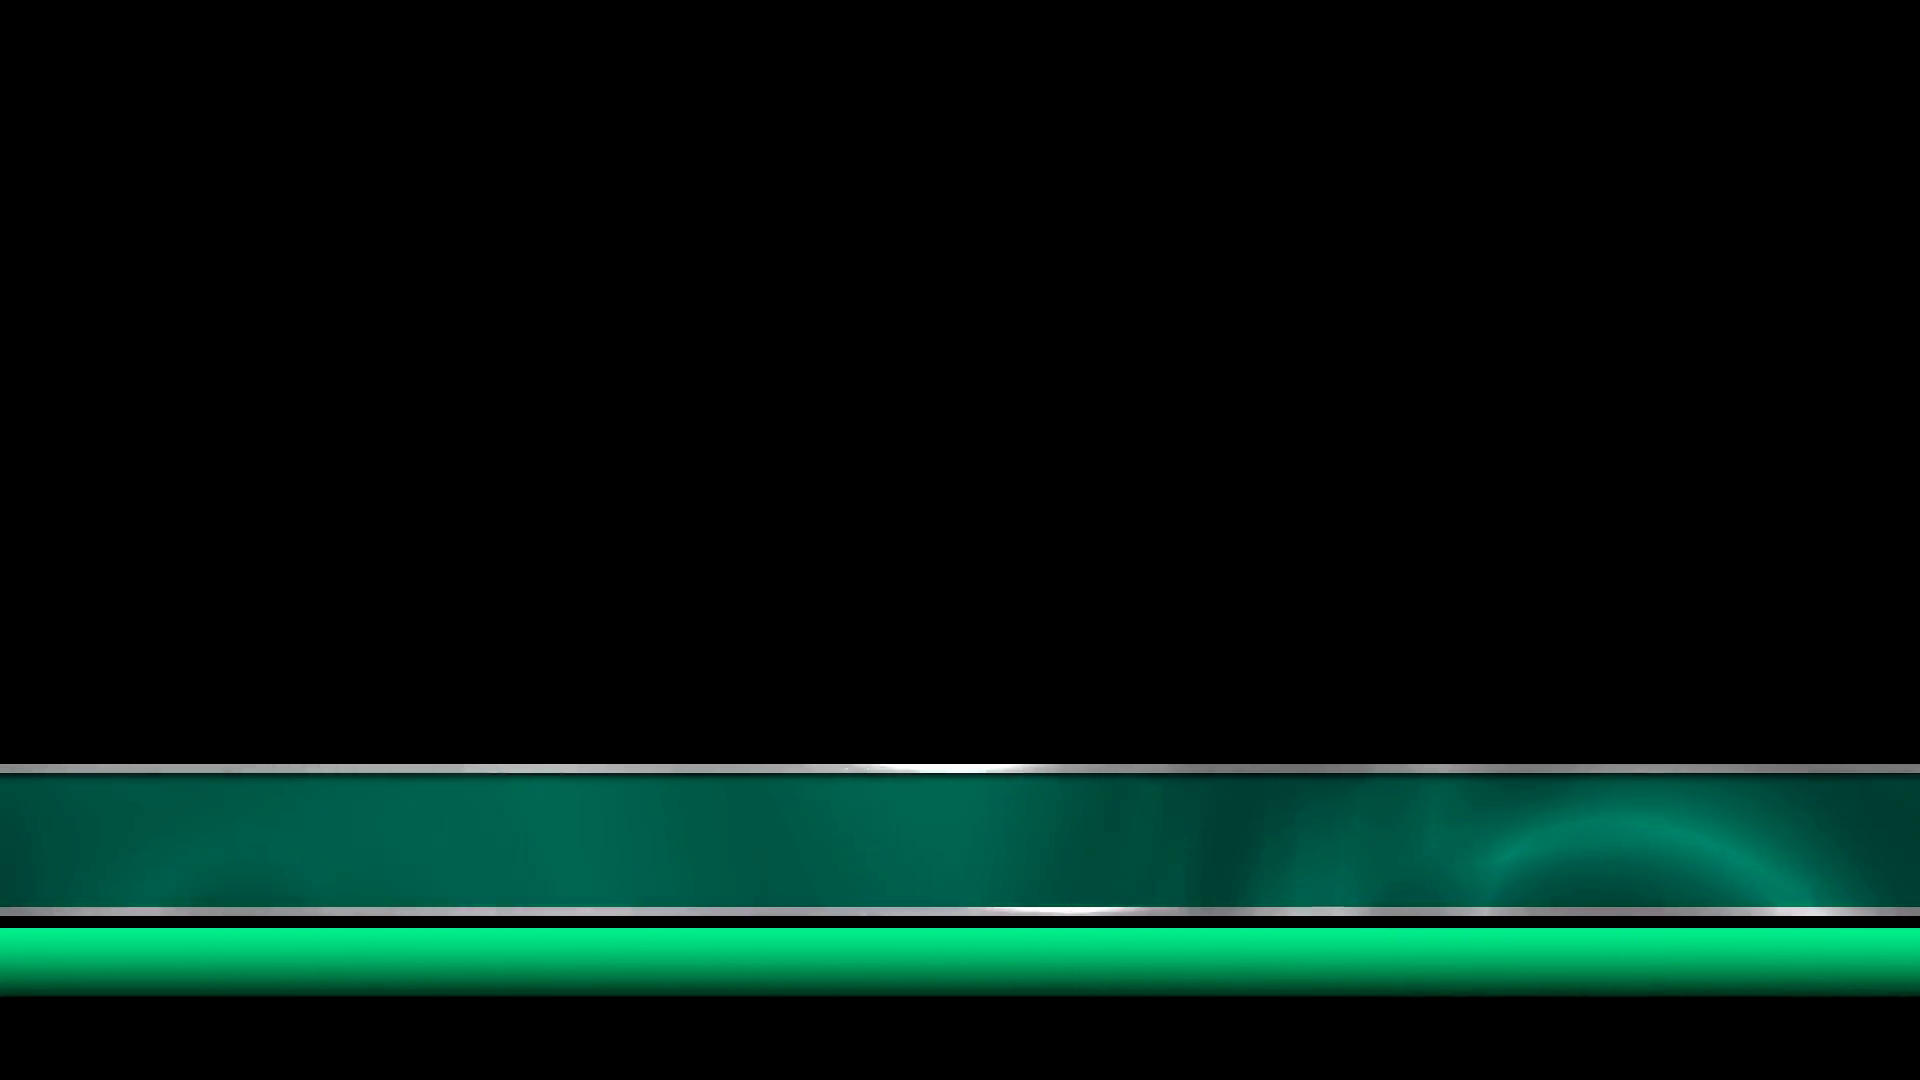 Free Lower Third Template Luxury News Lower Third 5 Green Stock Video Footage